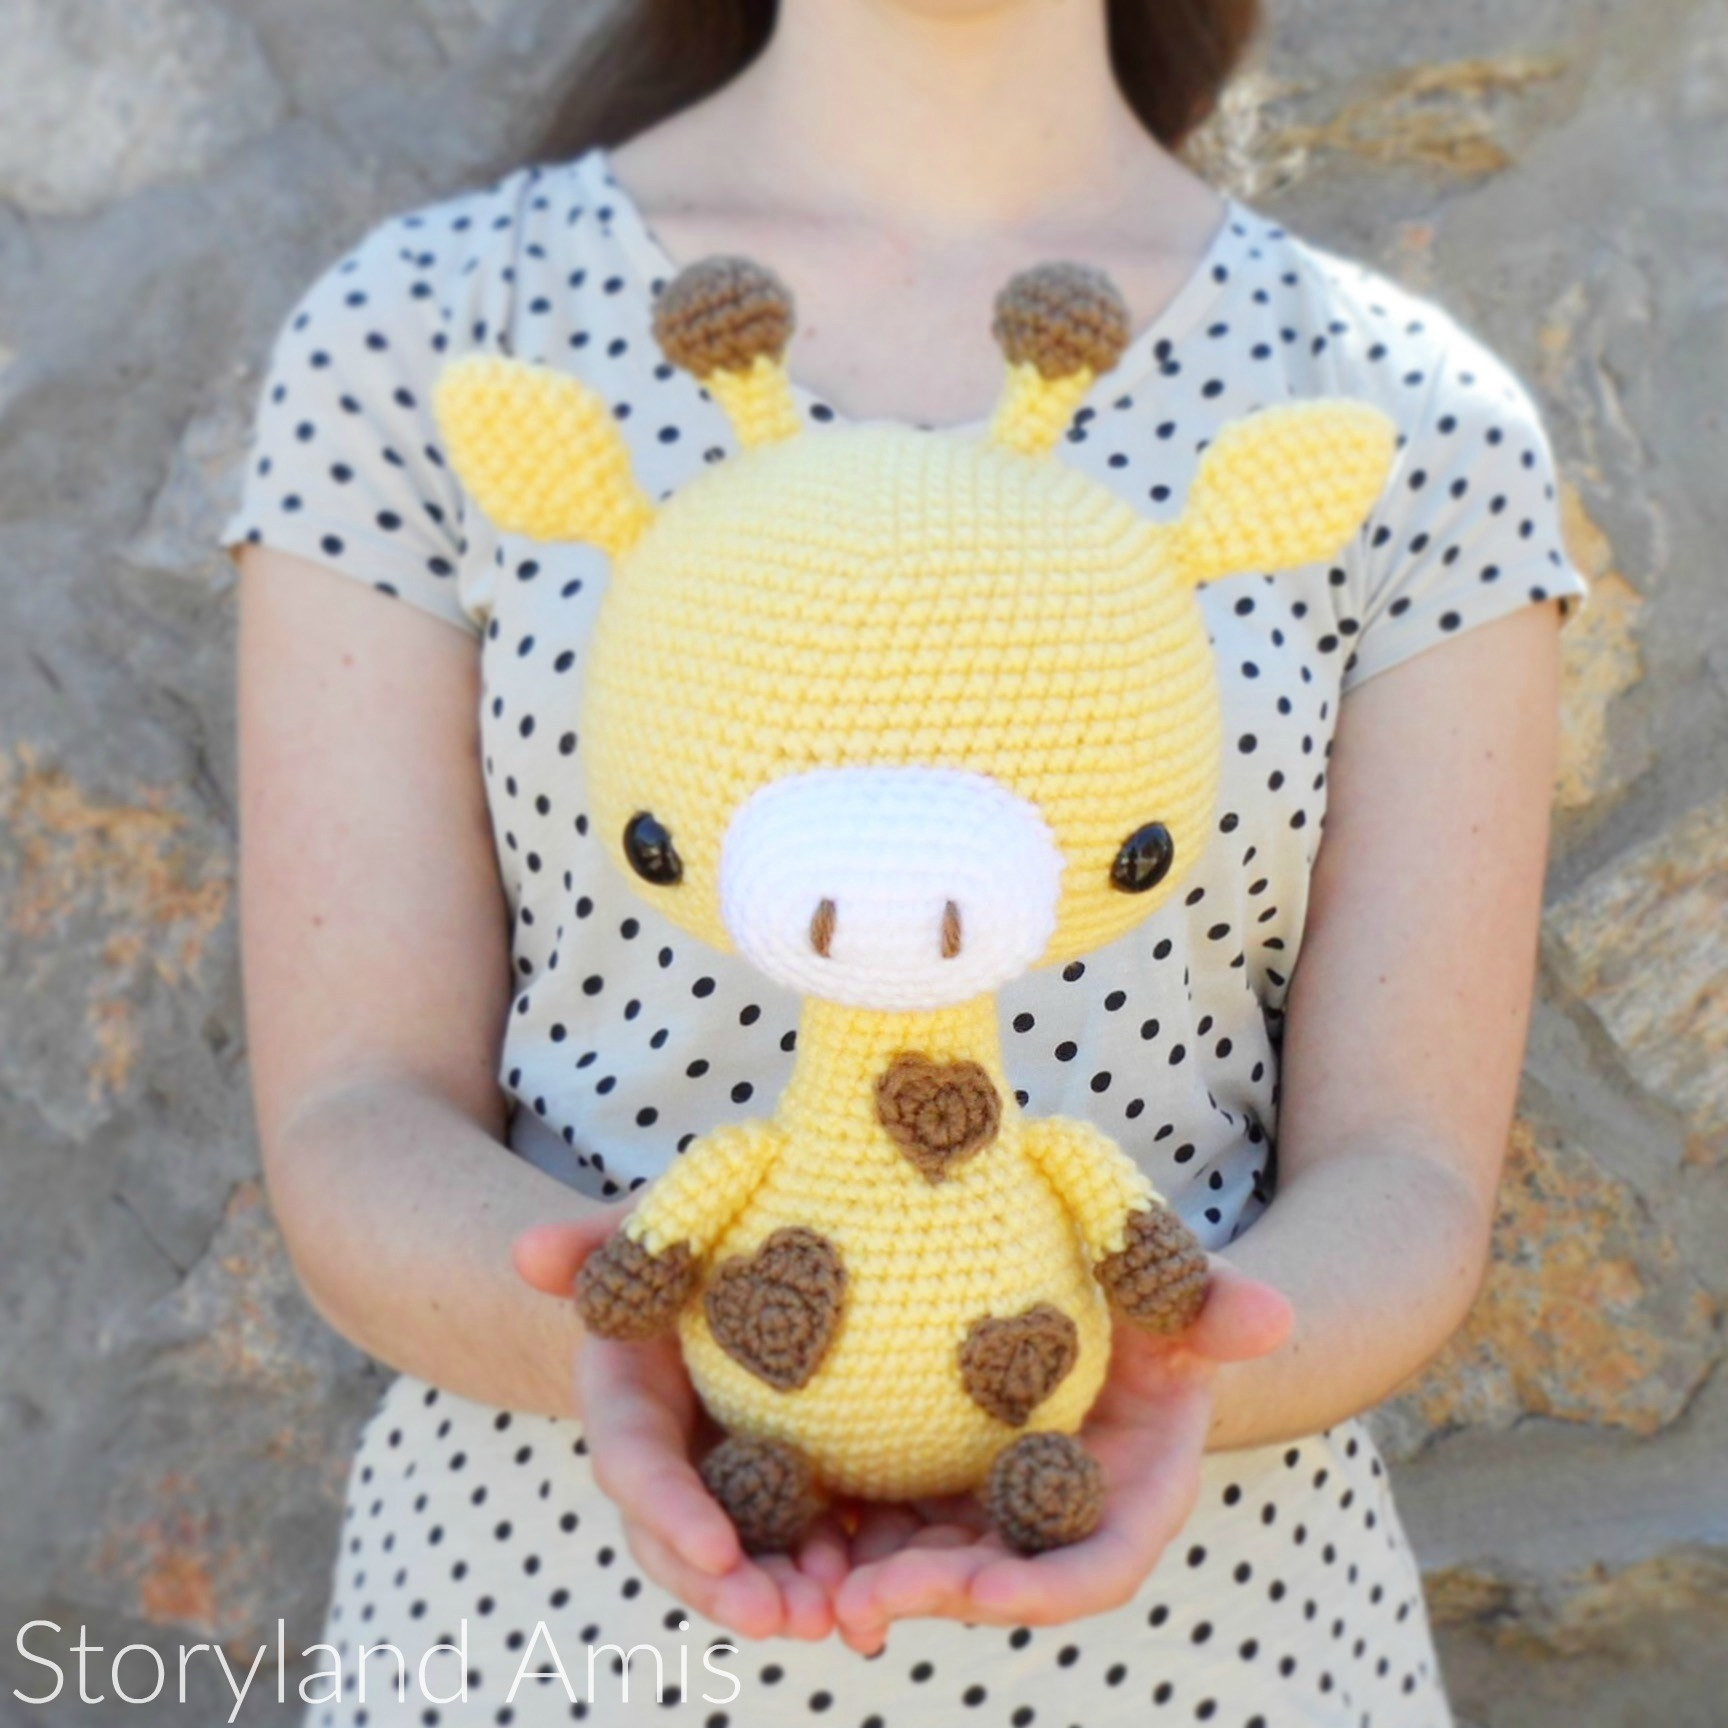 Crochet Animal Patterns Awesome Pattern Gerald the Cuddle Sized Giraffe Amigurumi Of Incredible 48 Images Crochet Animal Patterns